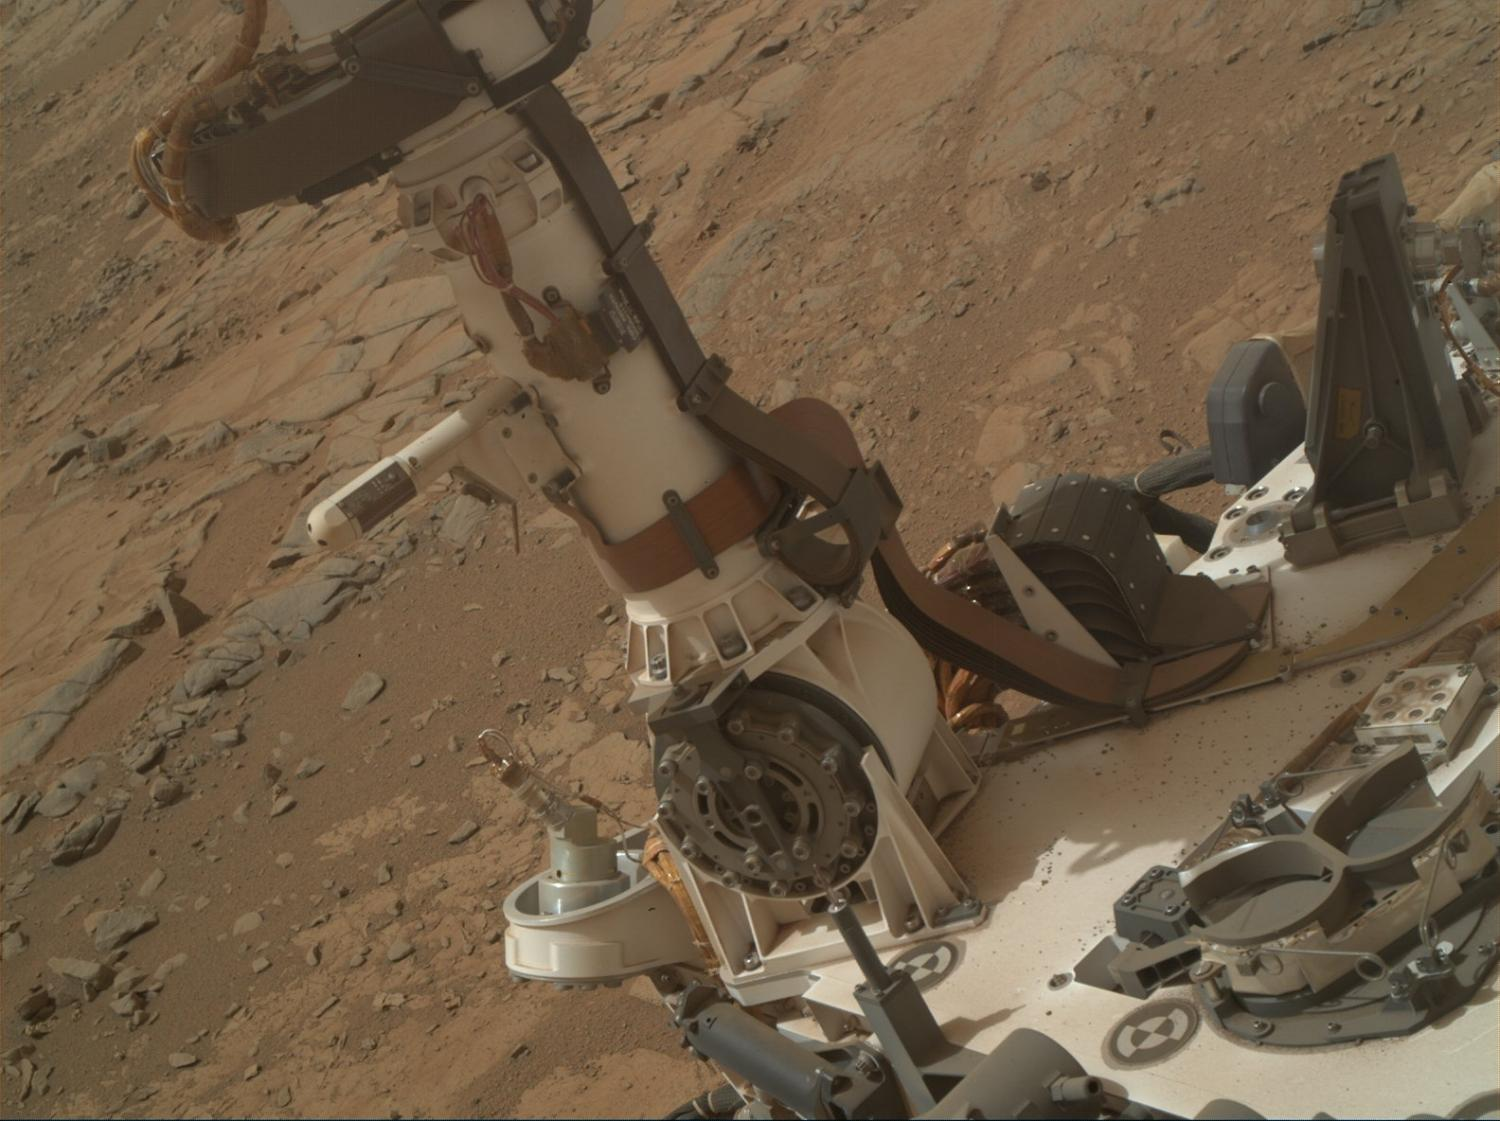 mars rover discovers - photo #8